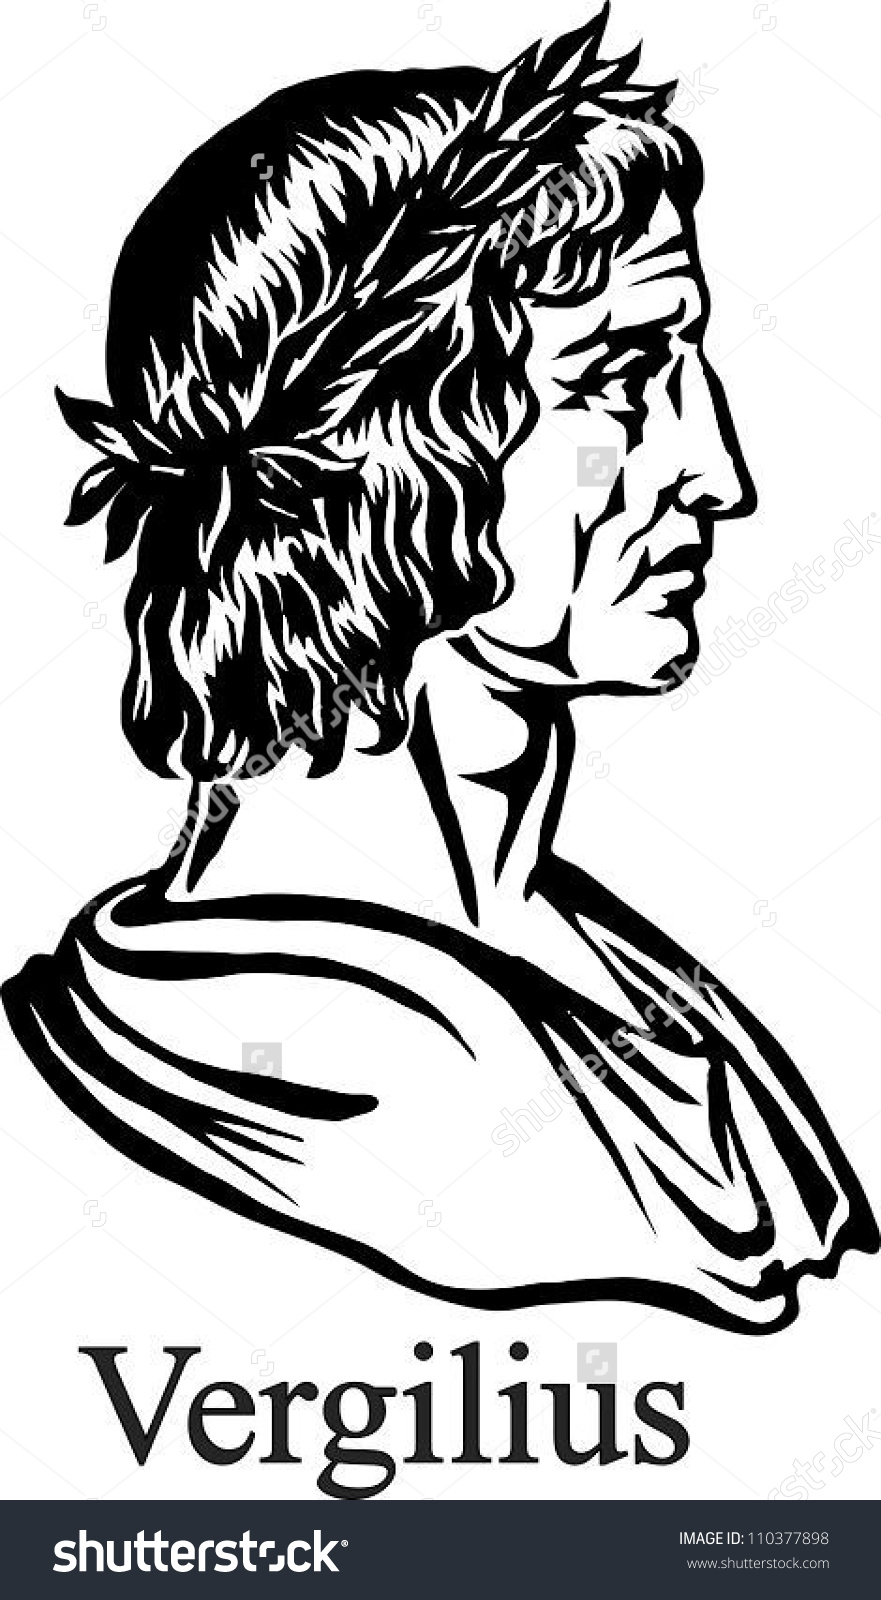 a short biography of roman poet virgil and an analysis of his mythological epic the aeneid Usually called virgil or vergil /ˈvɜːrdʒᵻl/ in english, was an ancient roman poet of epic aeneid a number of minor the poetry of virgil in his.